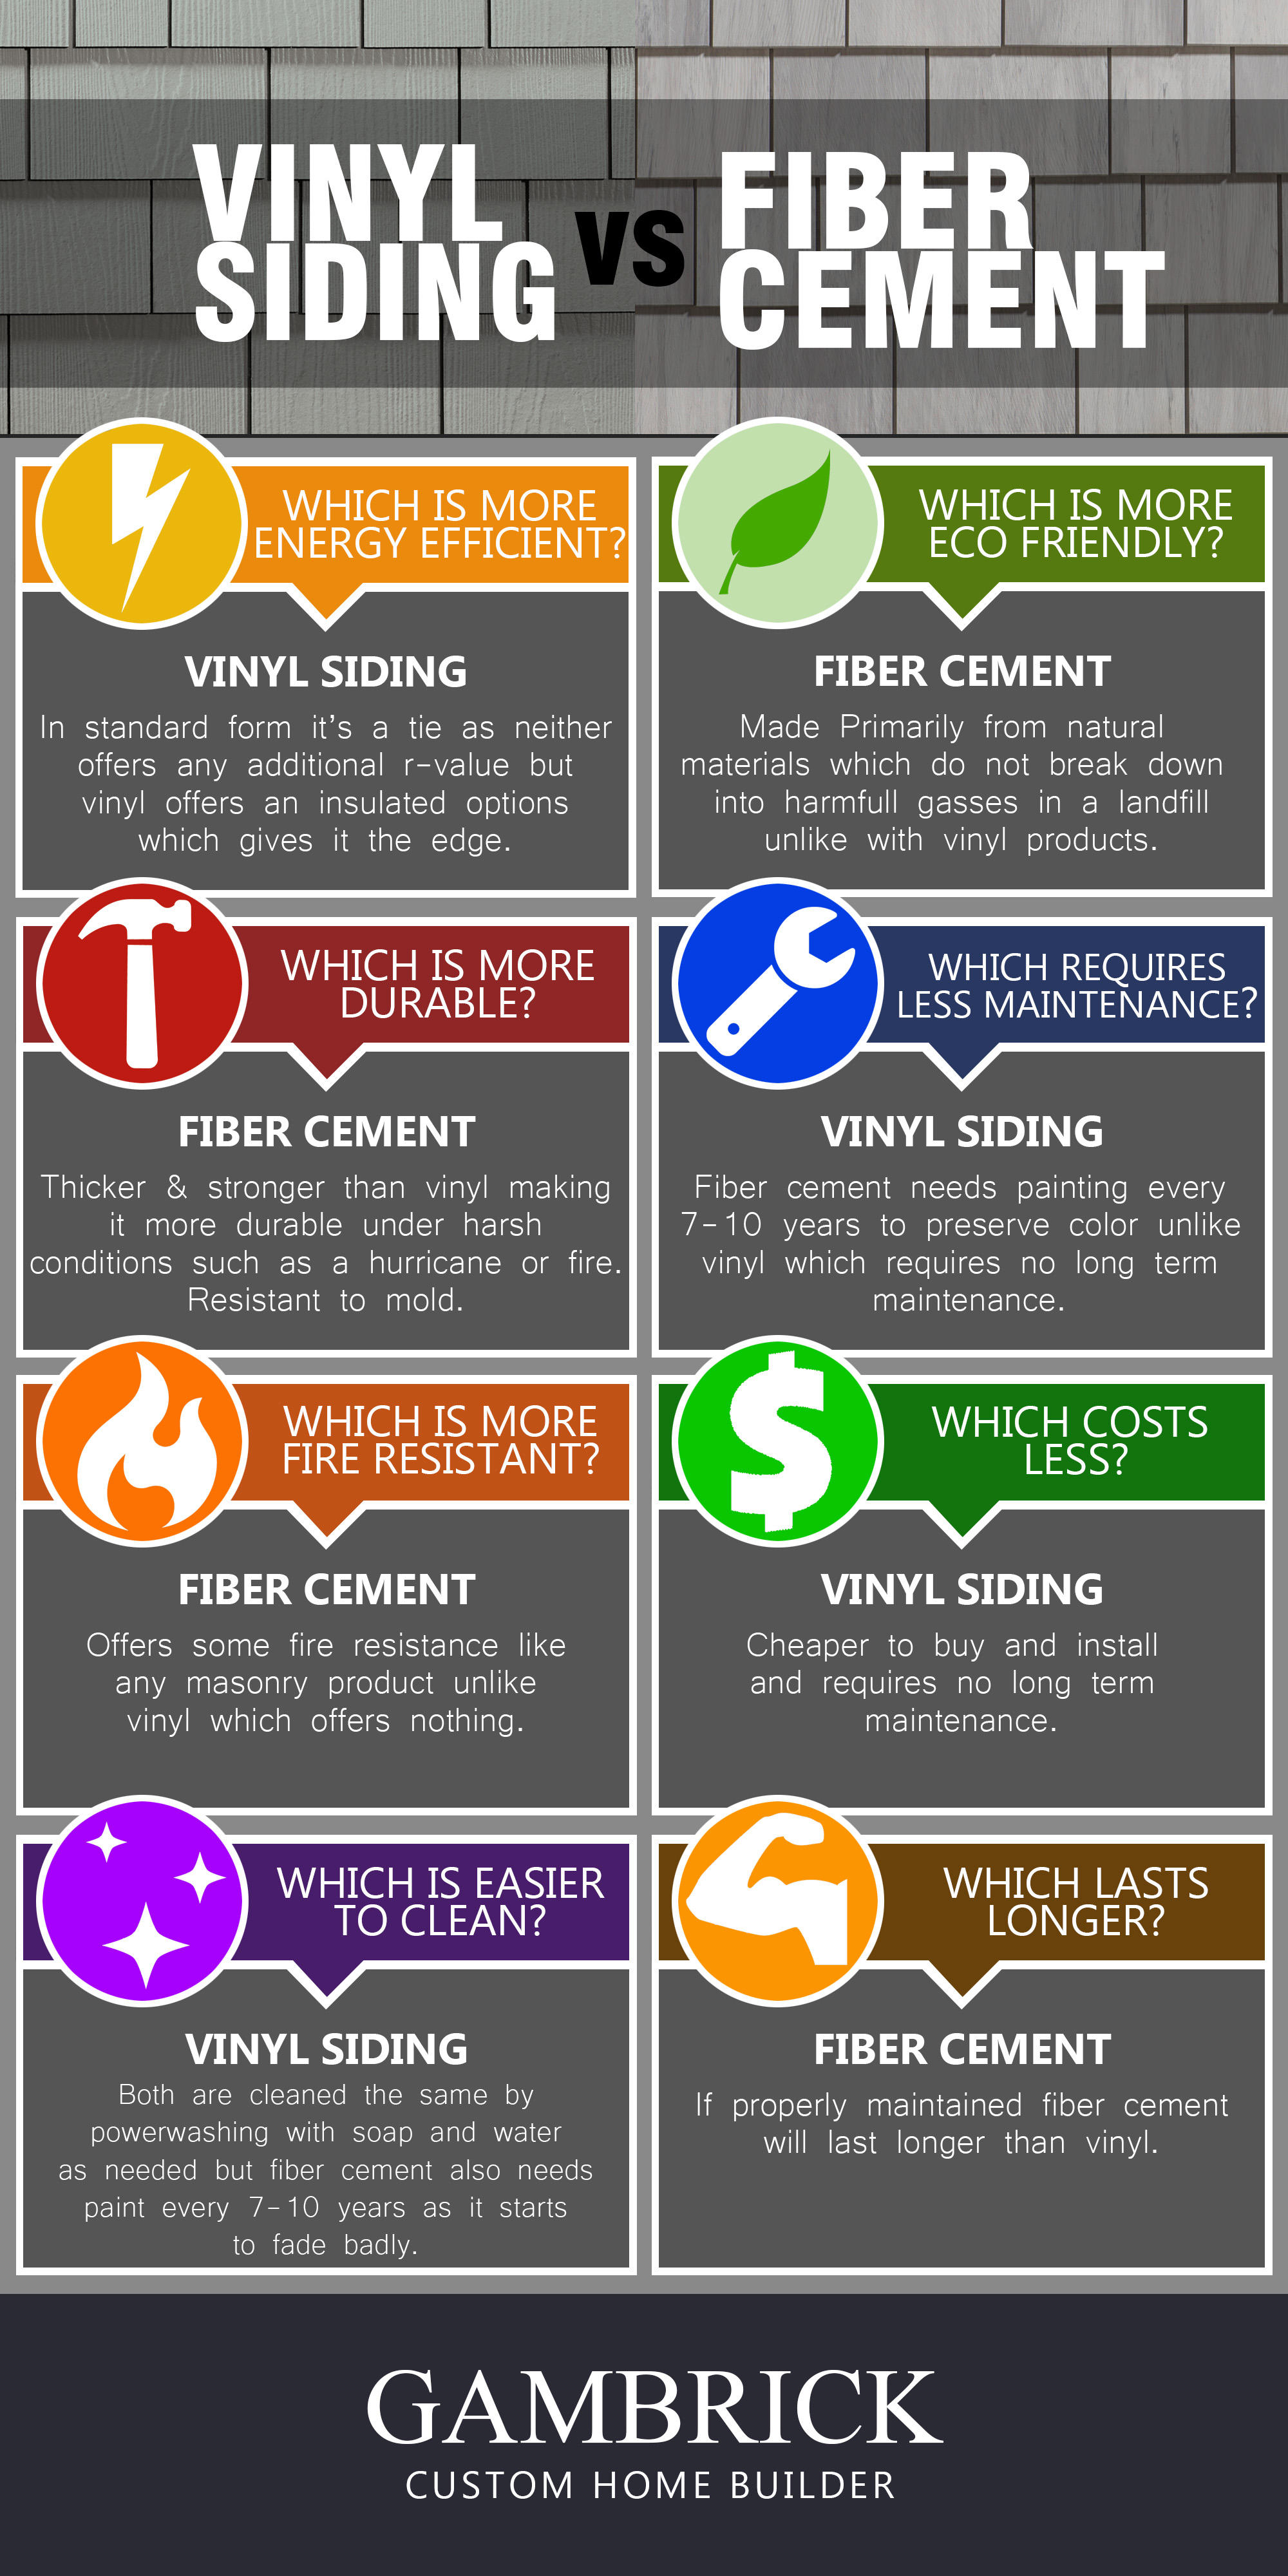 vinyl siding vs fiber cement infographic pros vs cons comparison chart